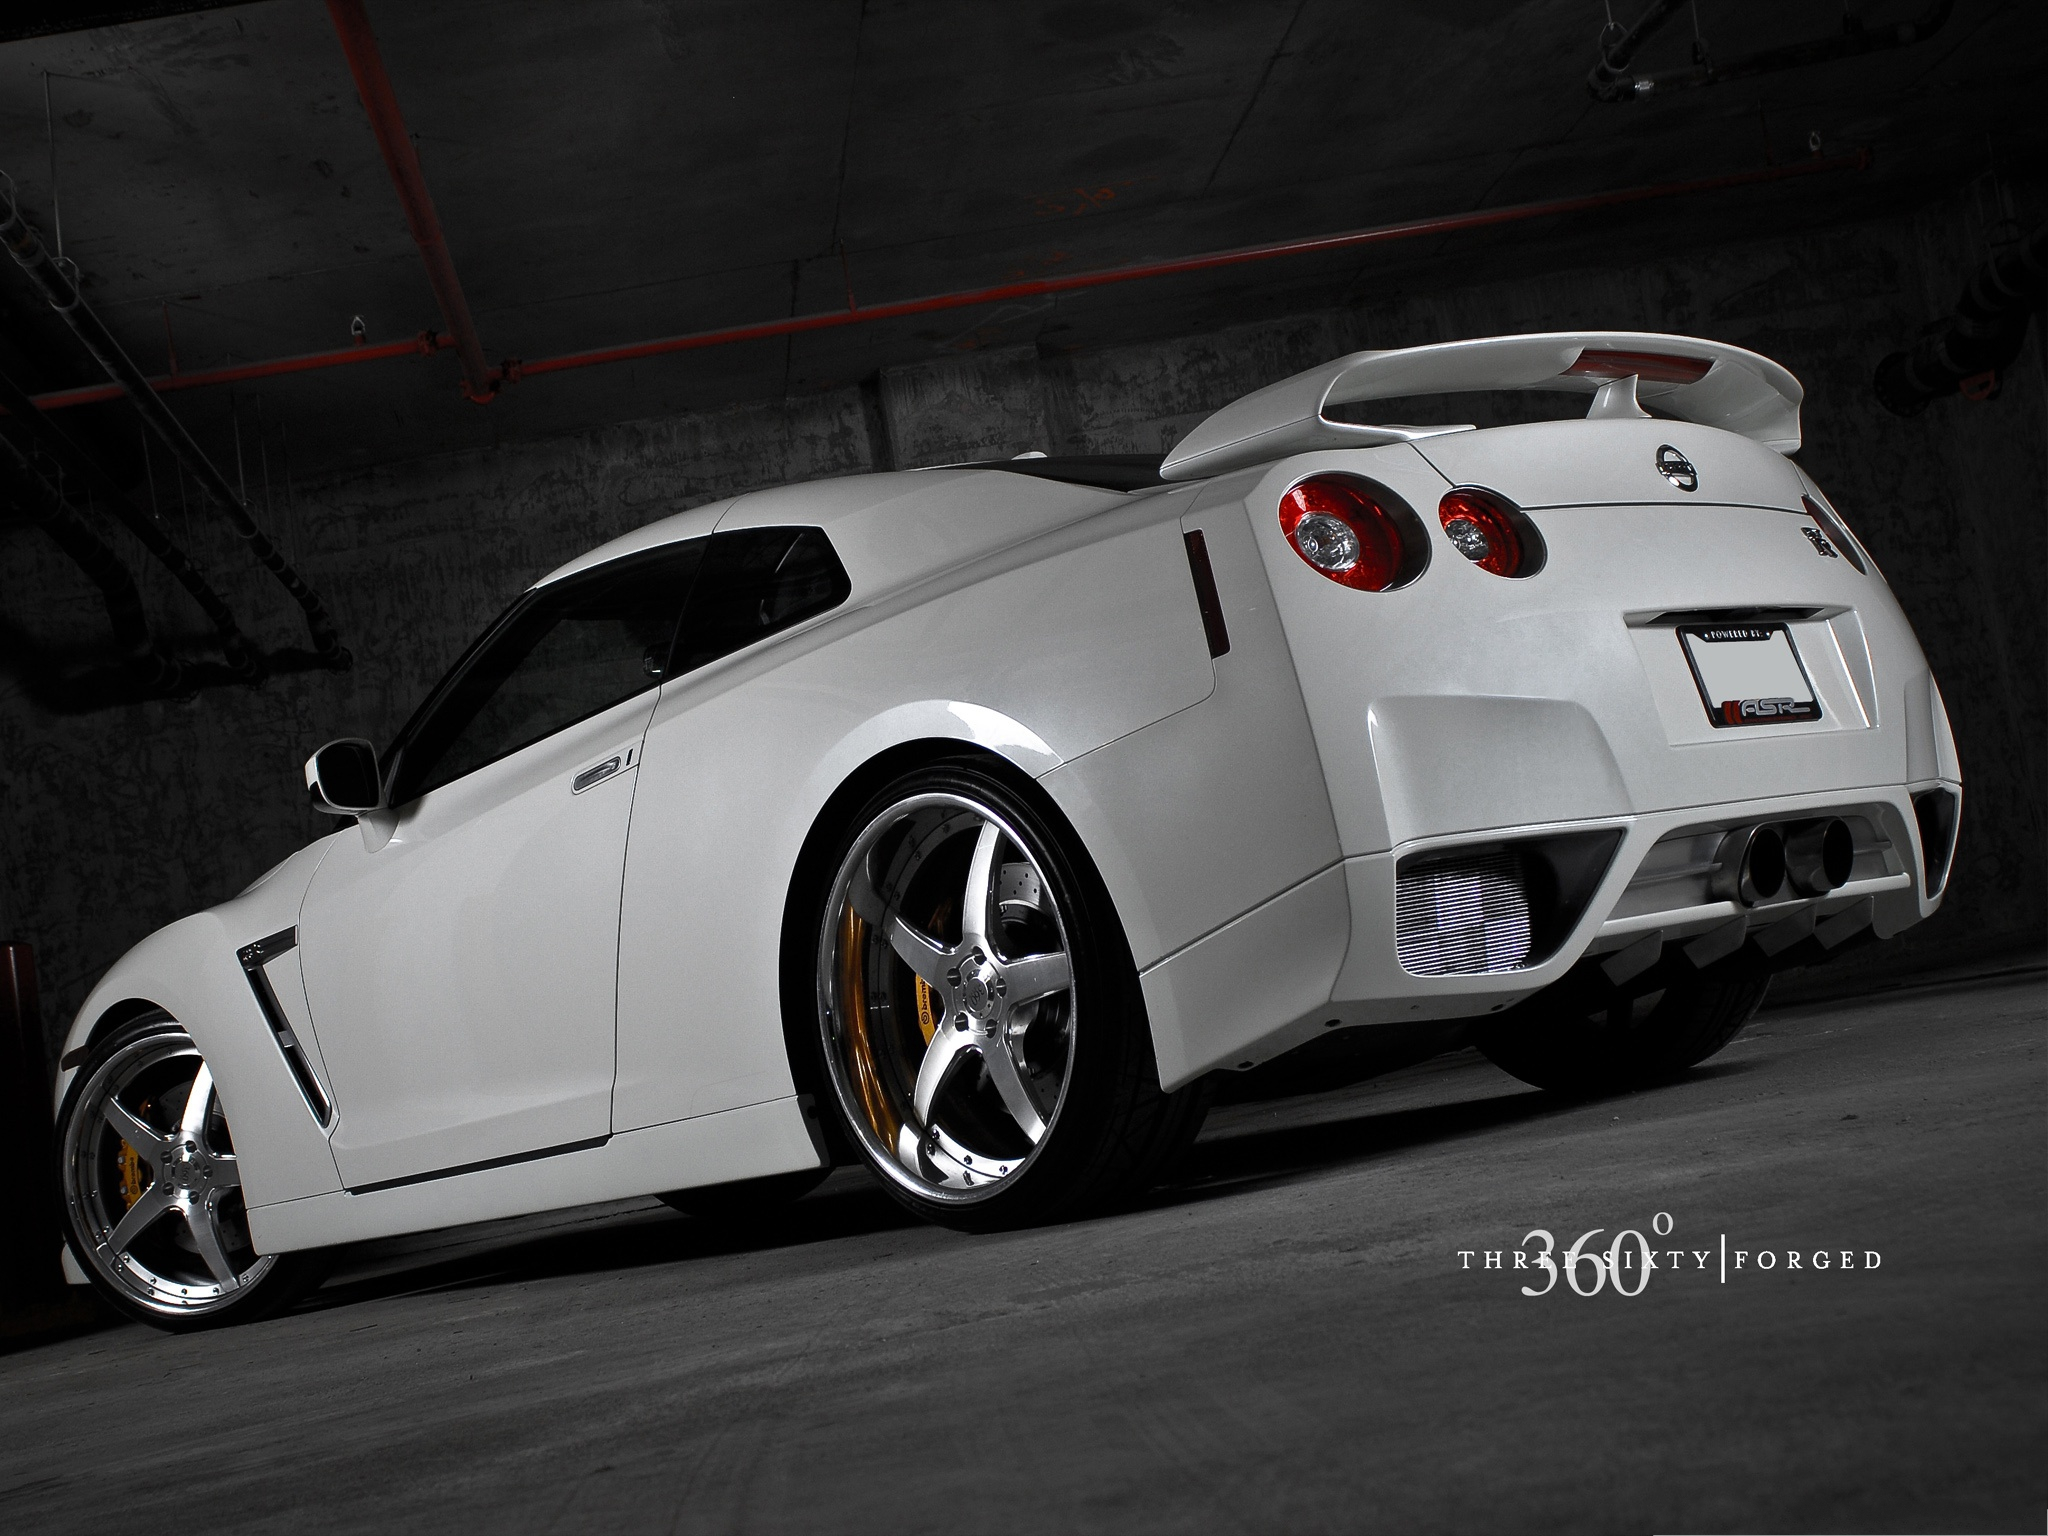 click to free download the wallpaper--Nissan Sport Car Wallpaper, White and Decent Car About to Turn a Corner, Great in Look 2048X1536 free wallpaper download